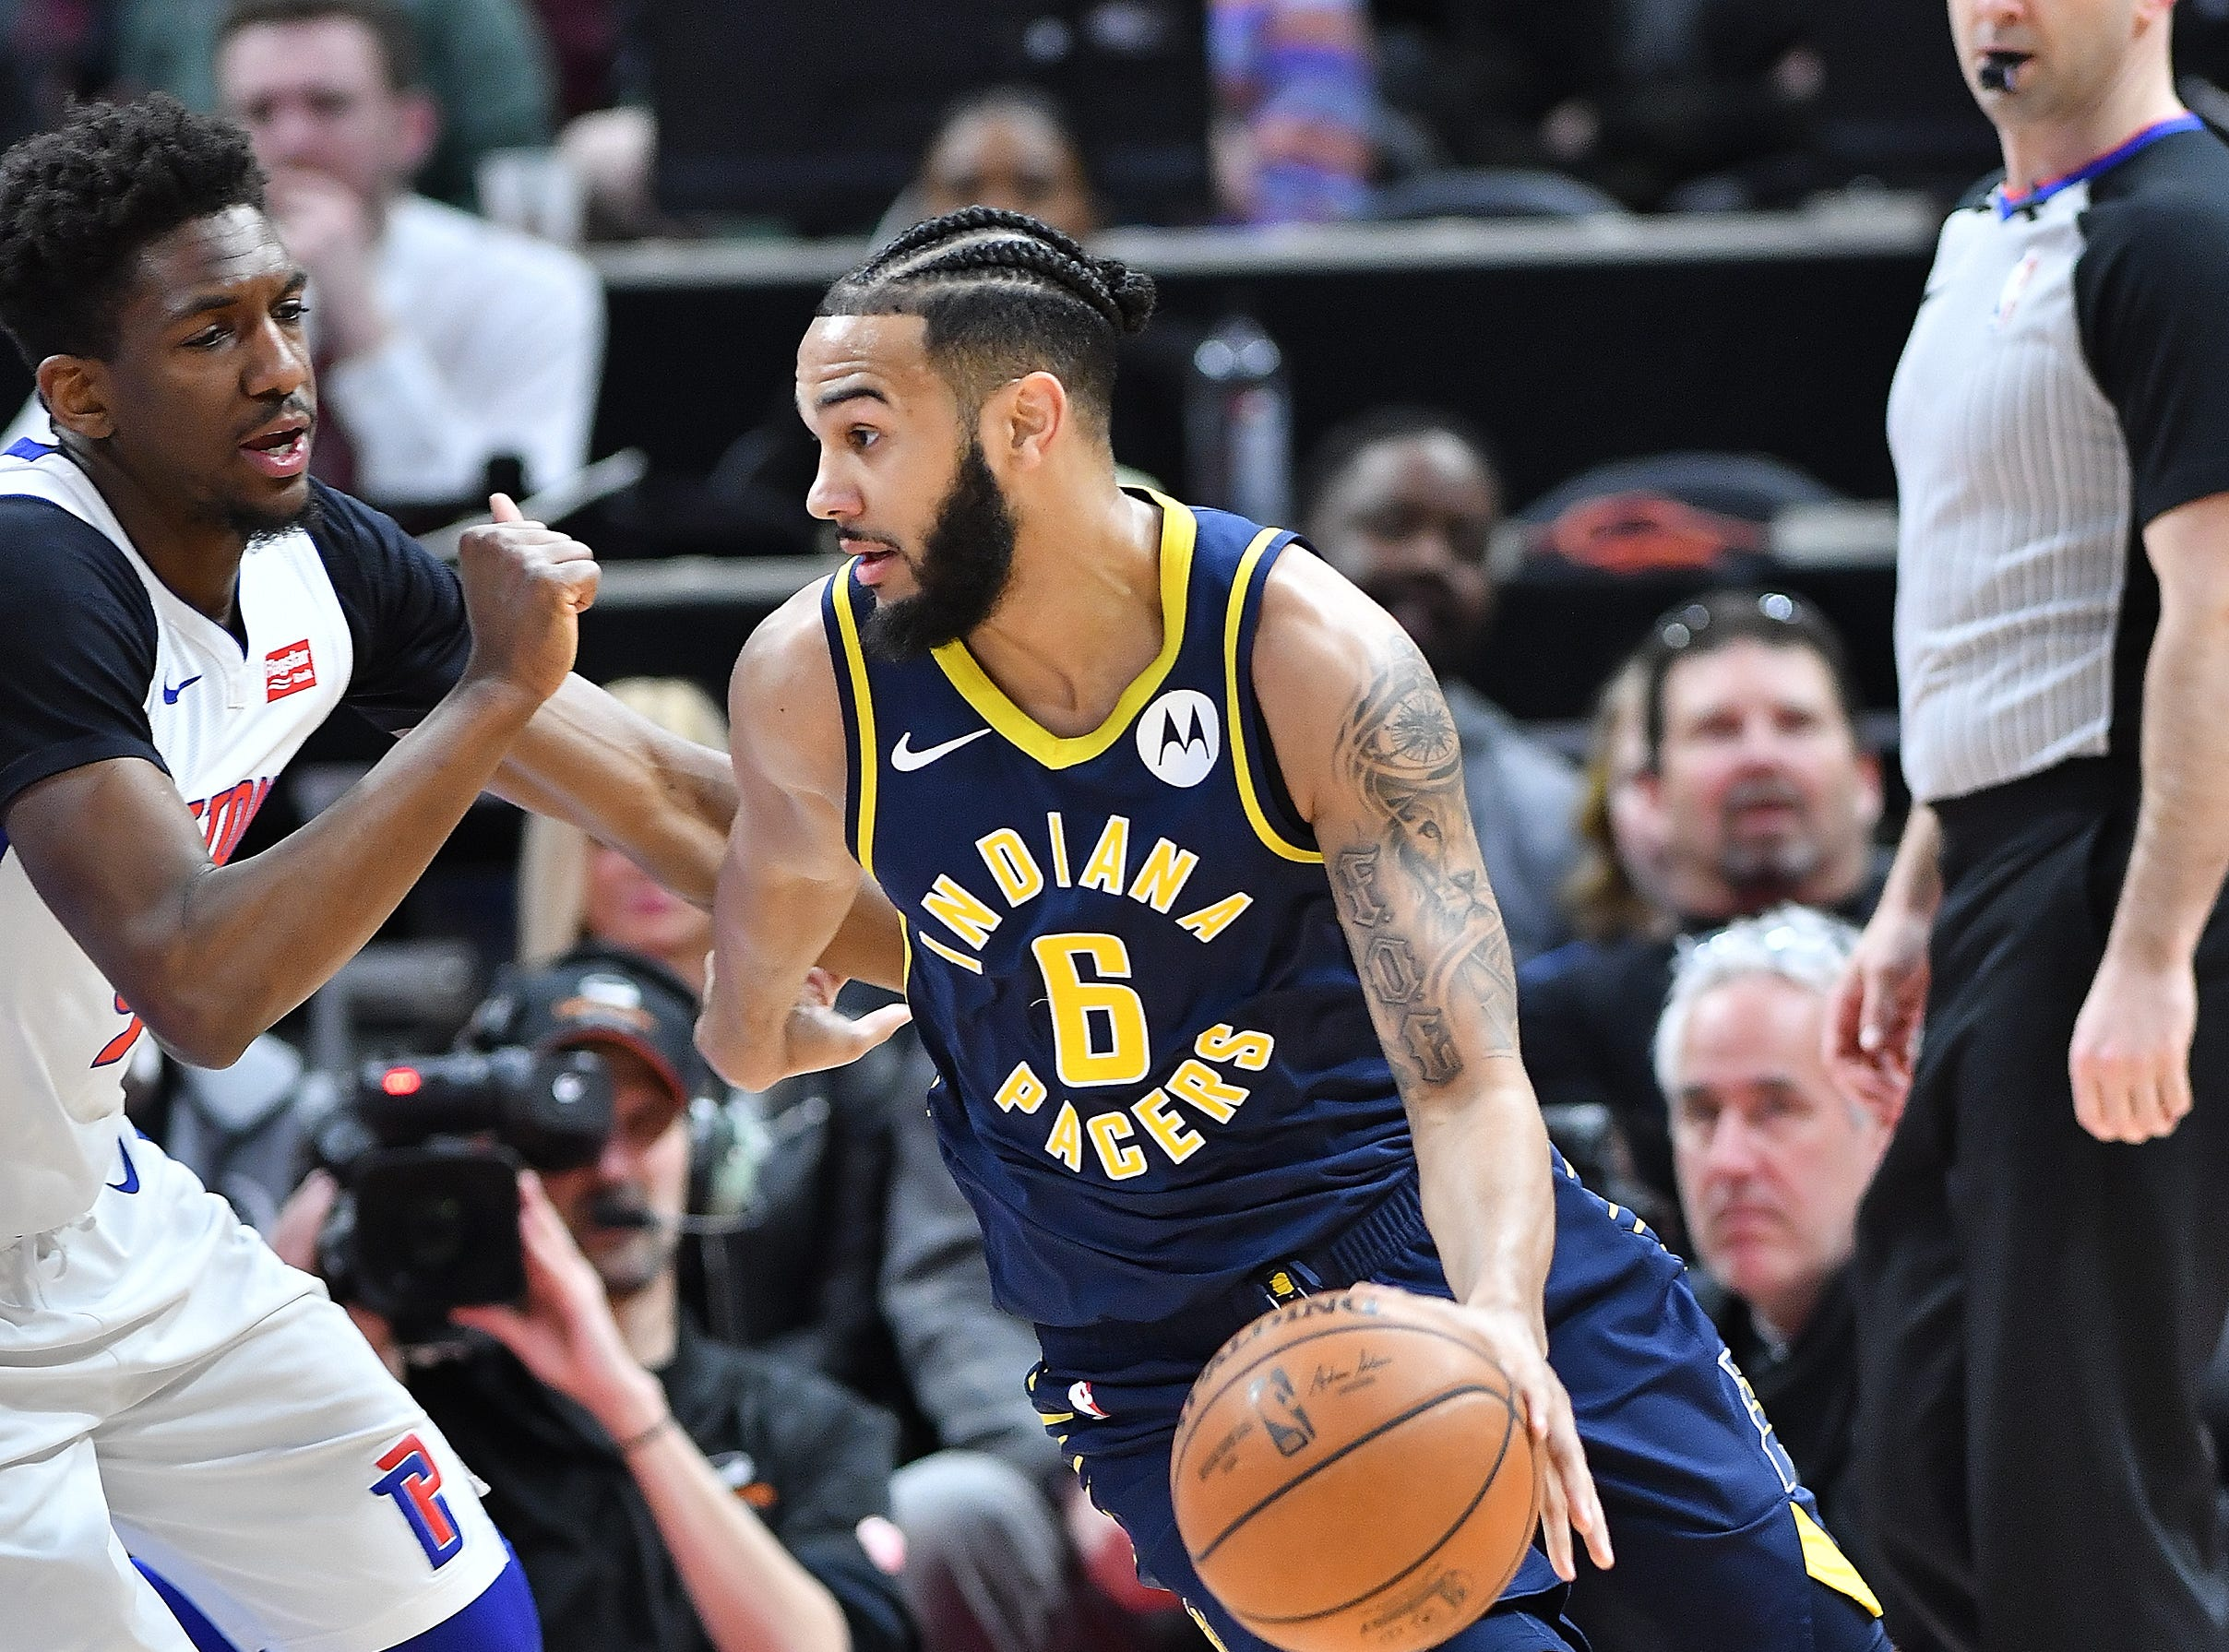 Pacers' Cory Joseph drives around Pistons' Langston Galloway in the first quarter.